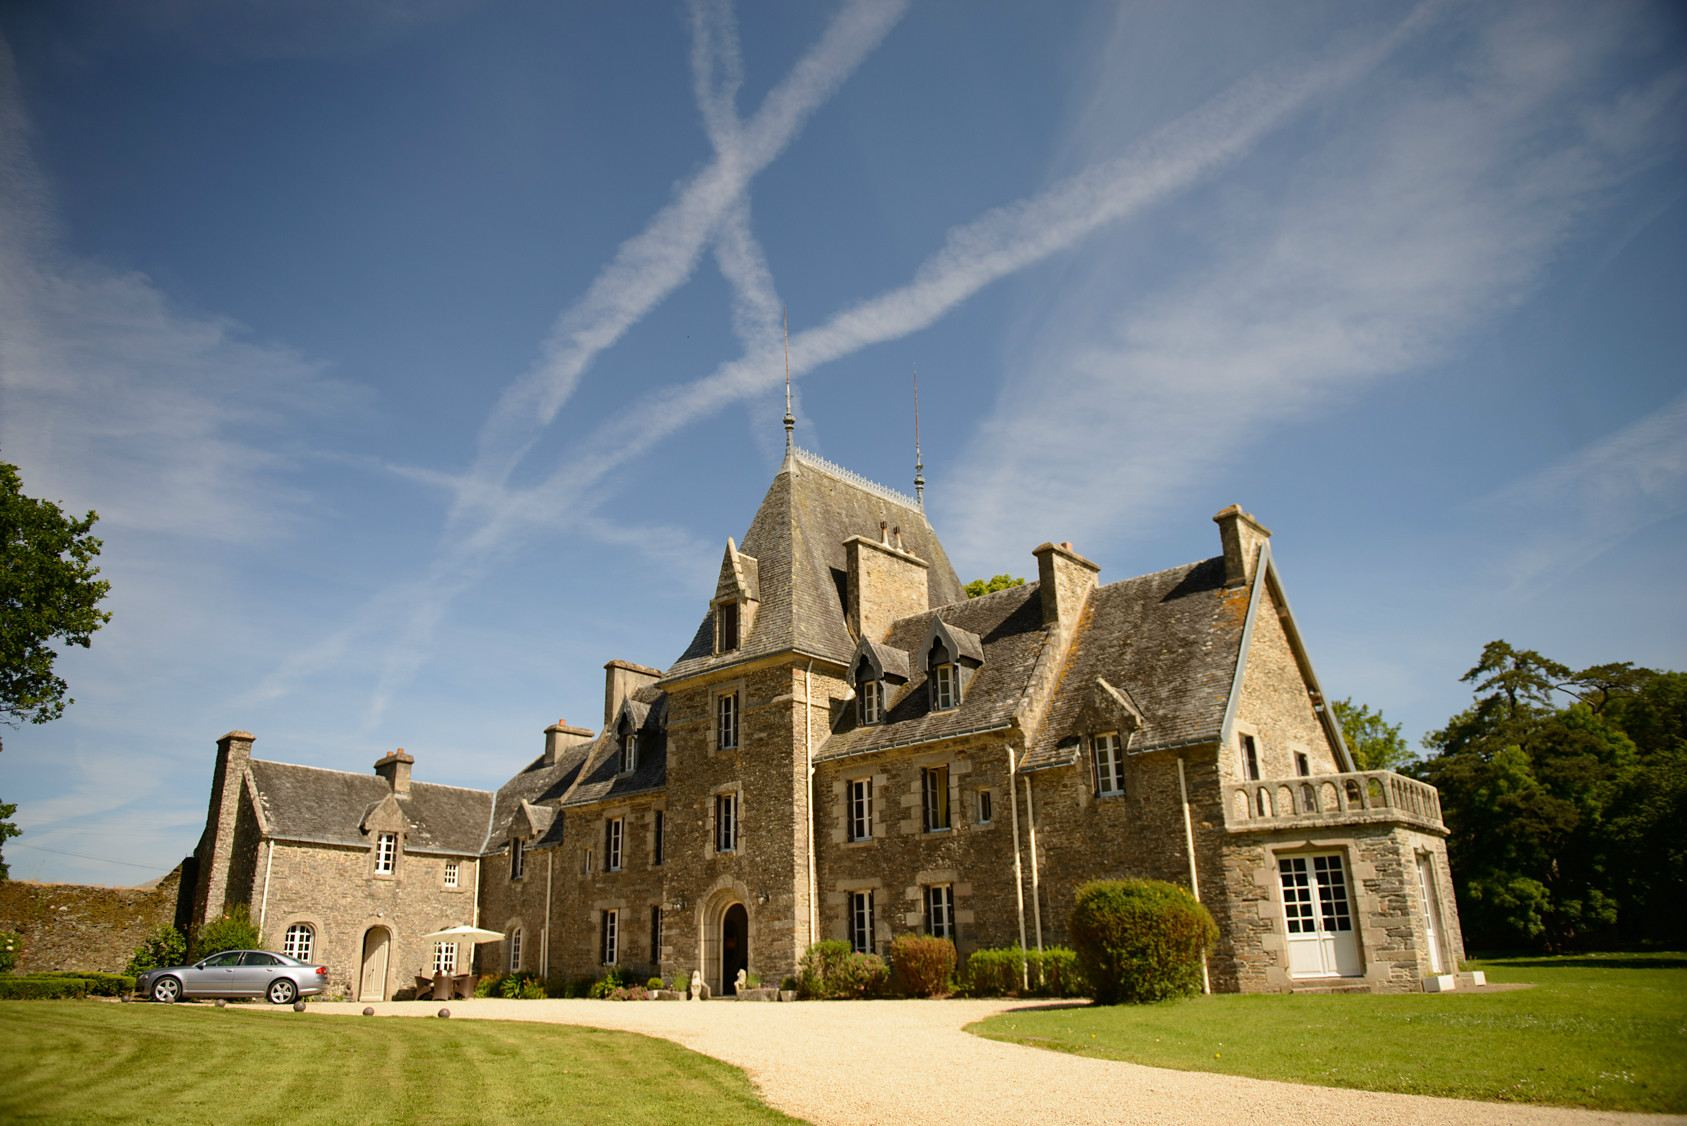 Property For Sale at Castle for sale in Brittany in excellent condition set on 86 acres.